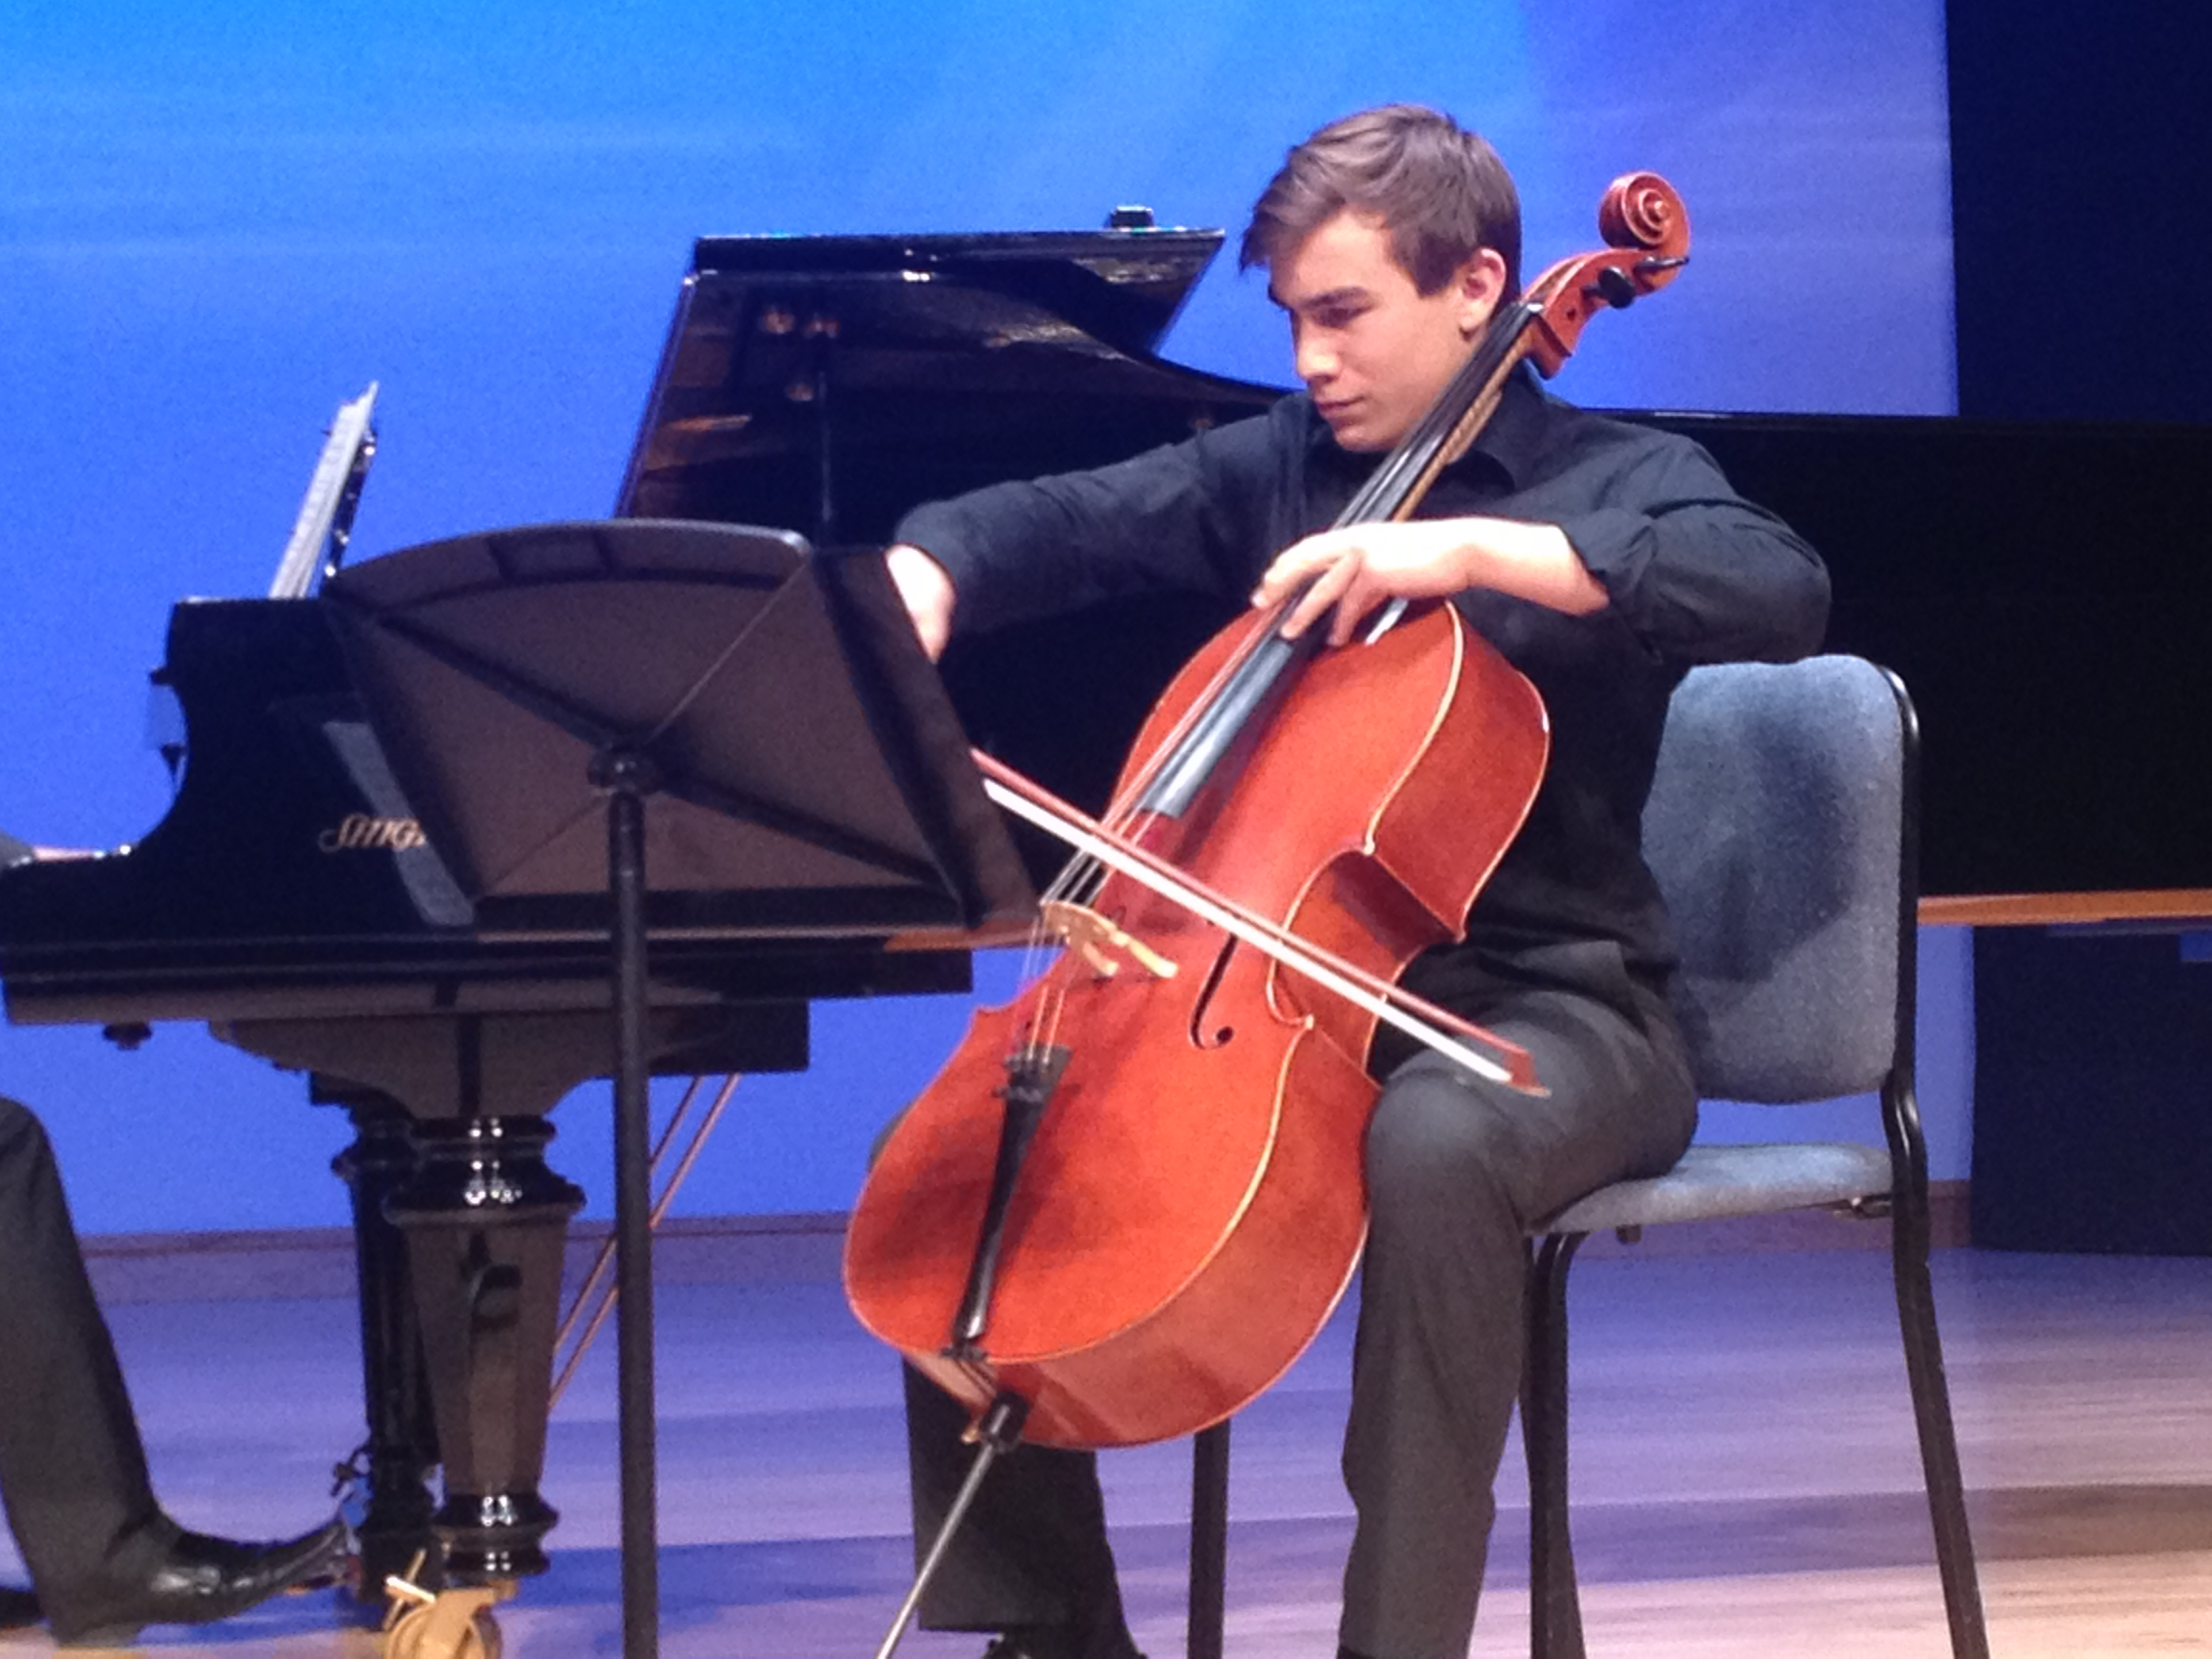 Academy grad Maclean Pachkowski reflects on a decade of growth at Mount Royal Conservatory